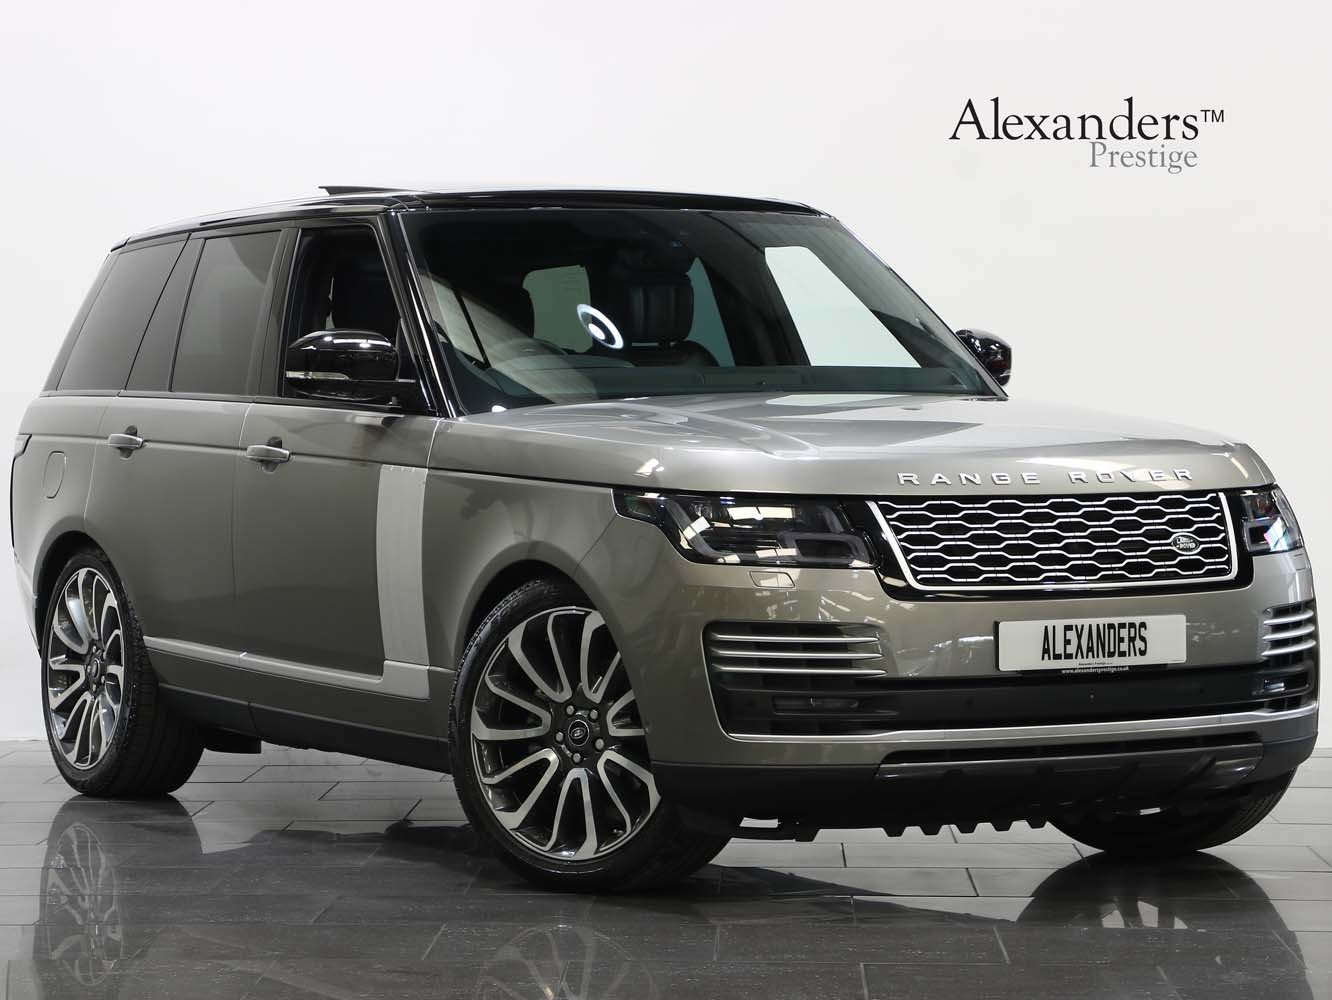 2019 19 19 RANGE ROVER AUTOBIOGRAPHY AUTO For Sale (picture 1 of 6)